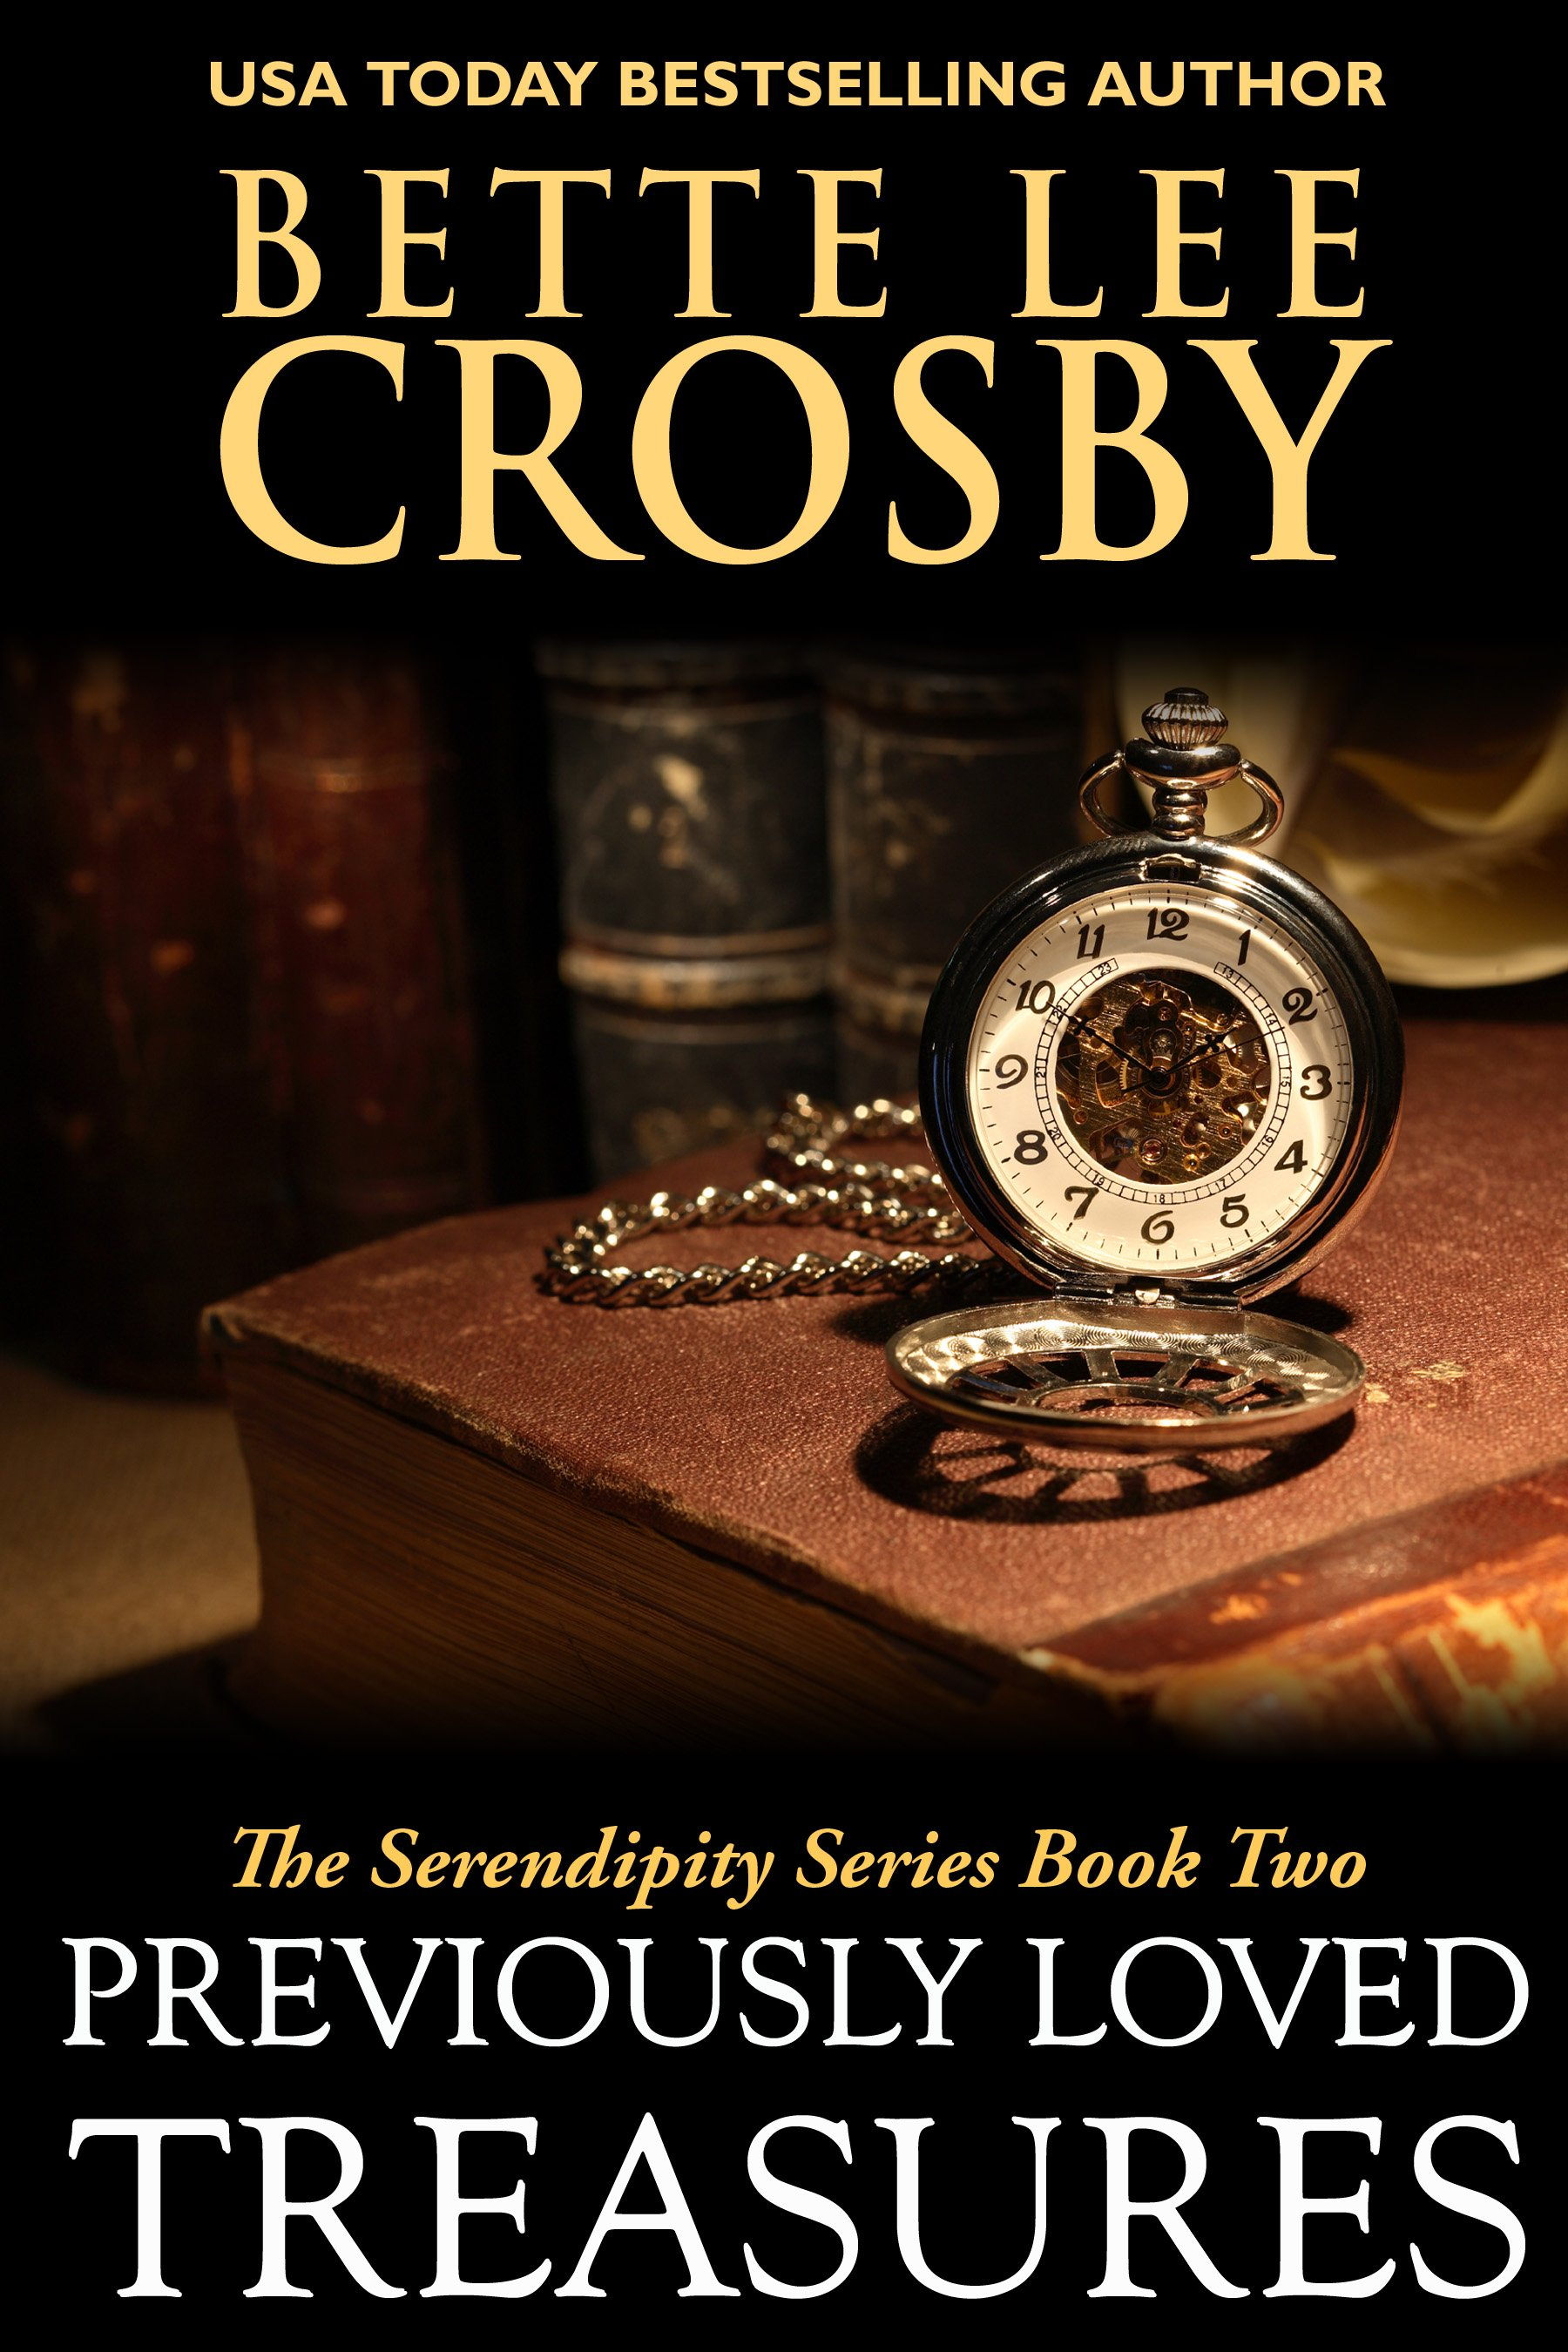 The Reader Salute – Previously Loved Treasures Review by Sally